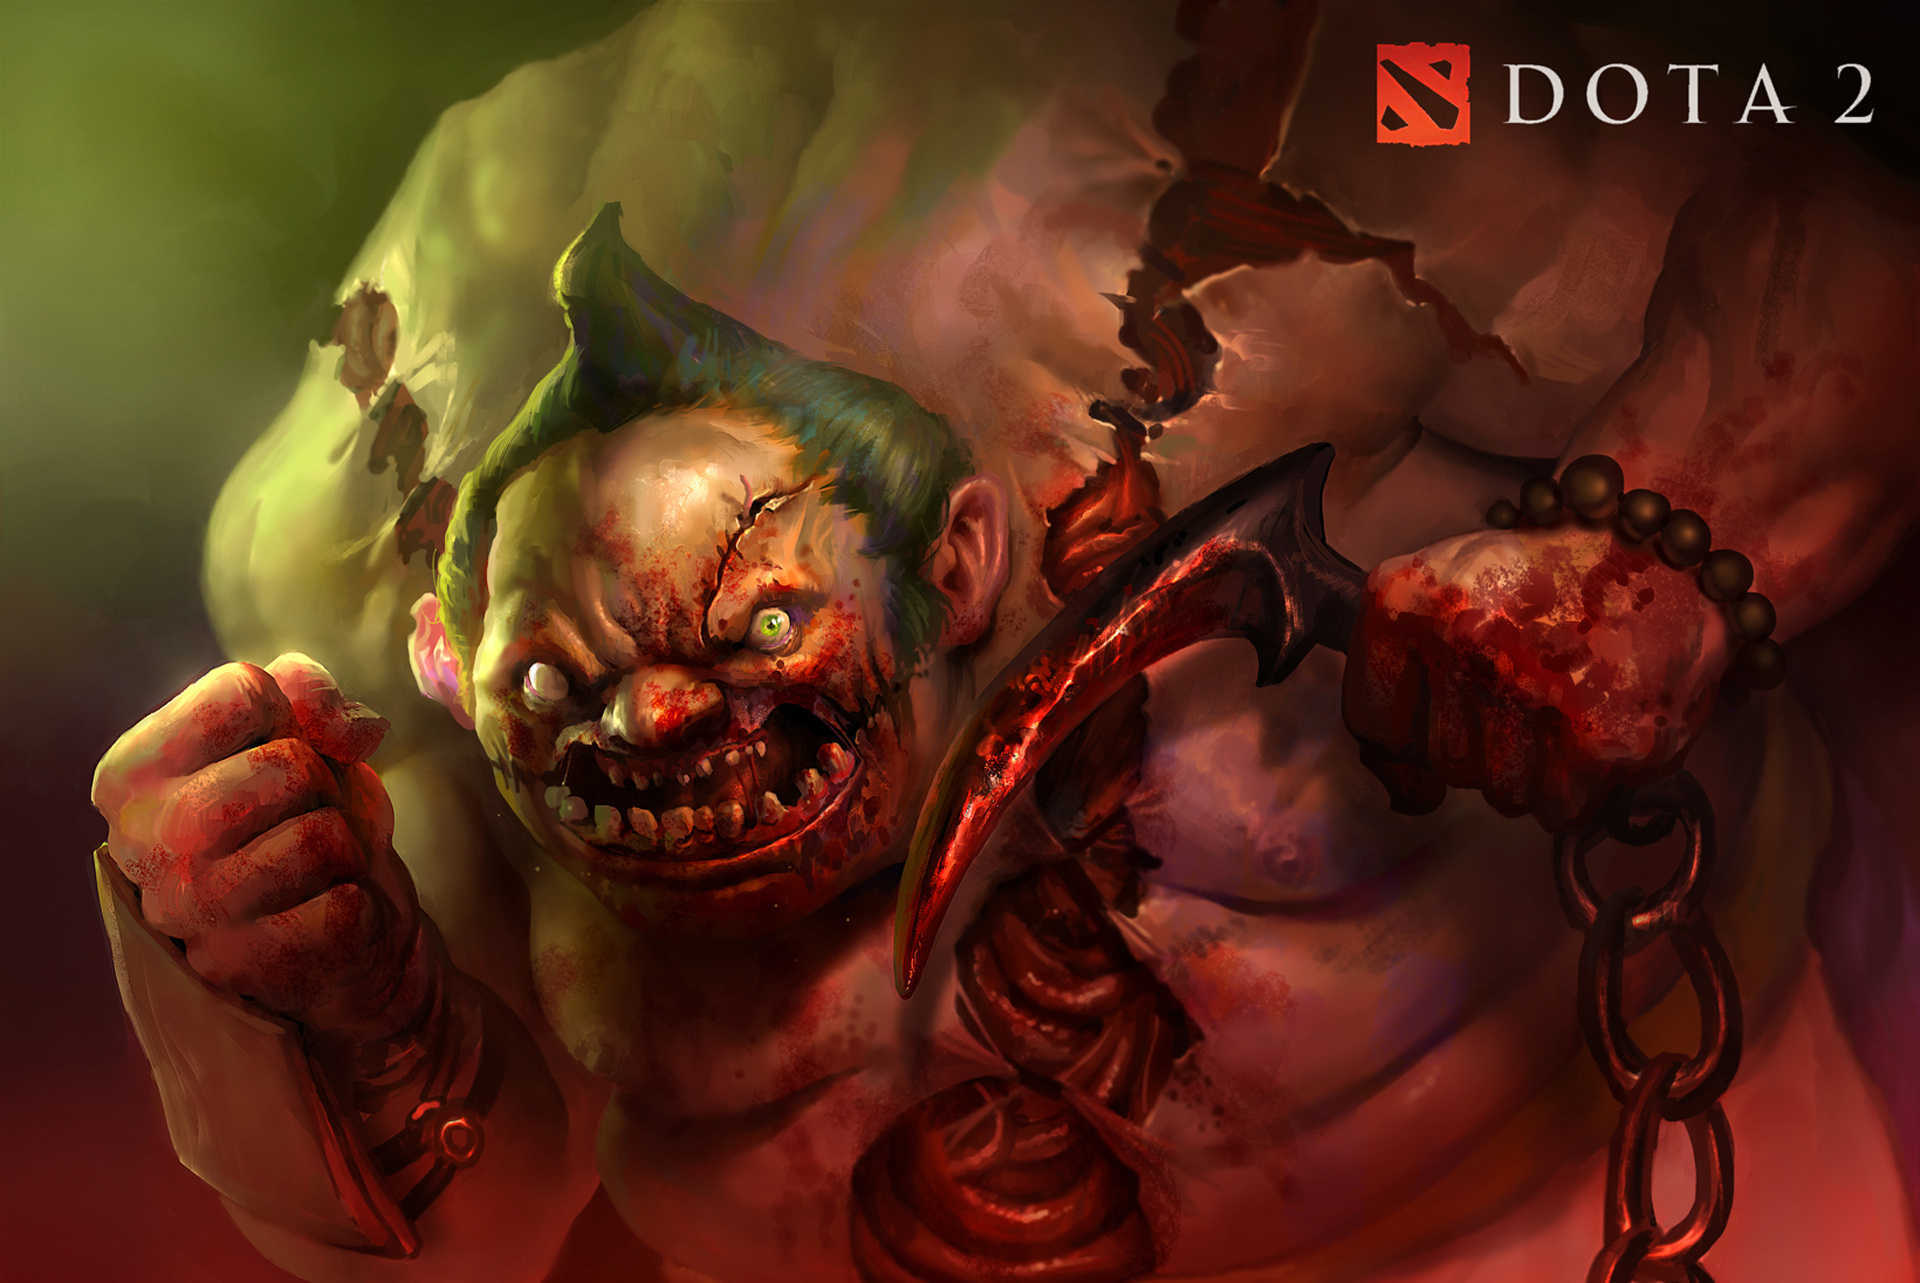 Amazing Dota 2 Hd Gaming Background For Pc Wallpaper.